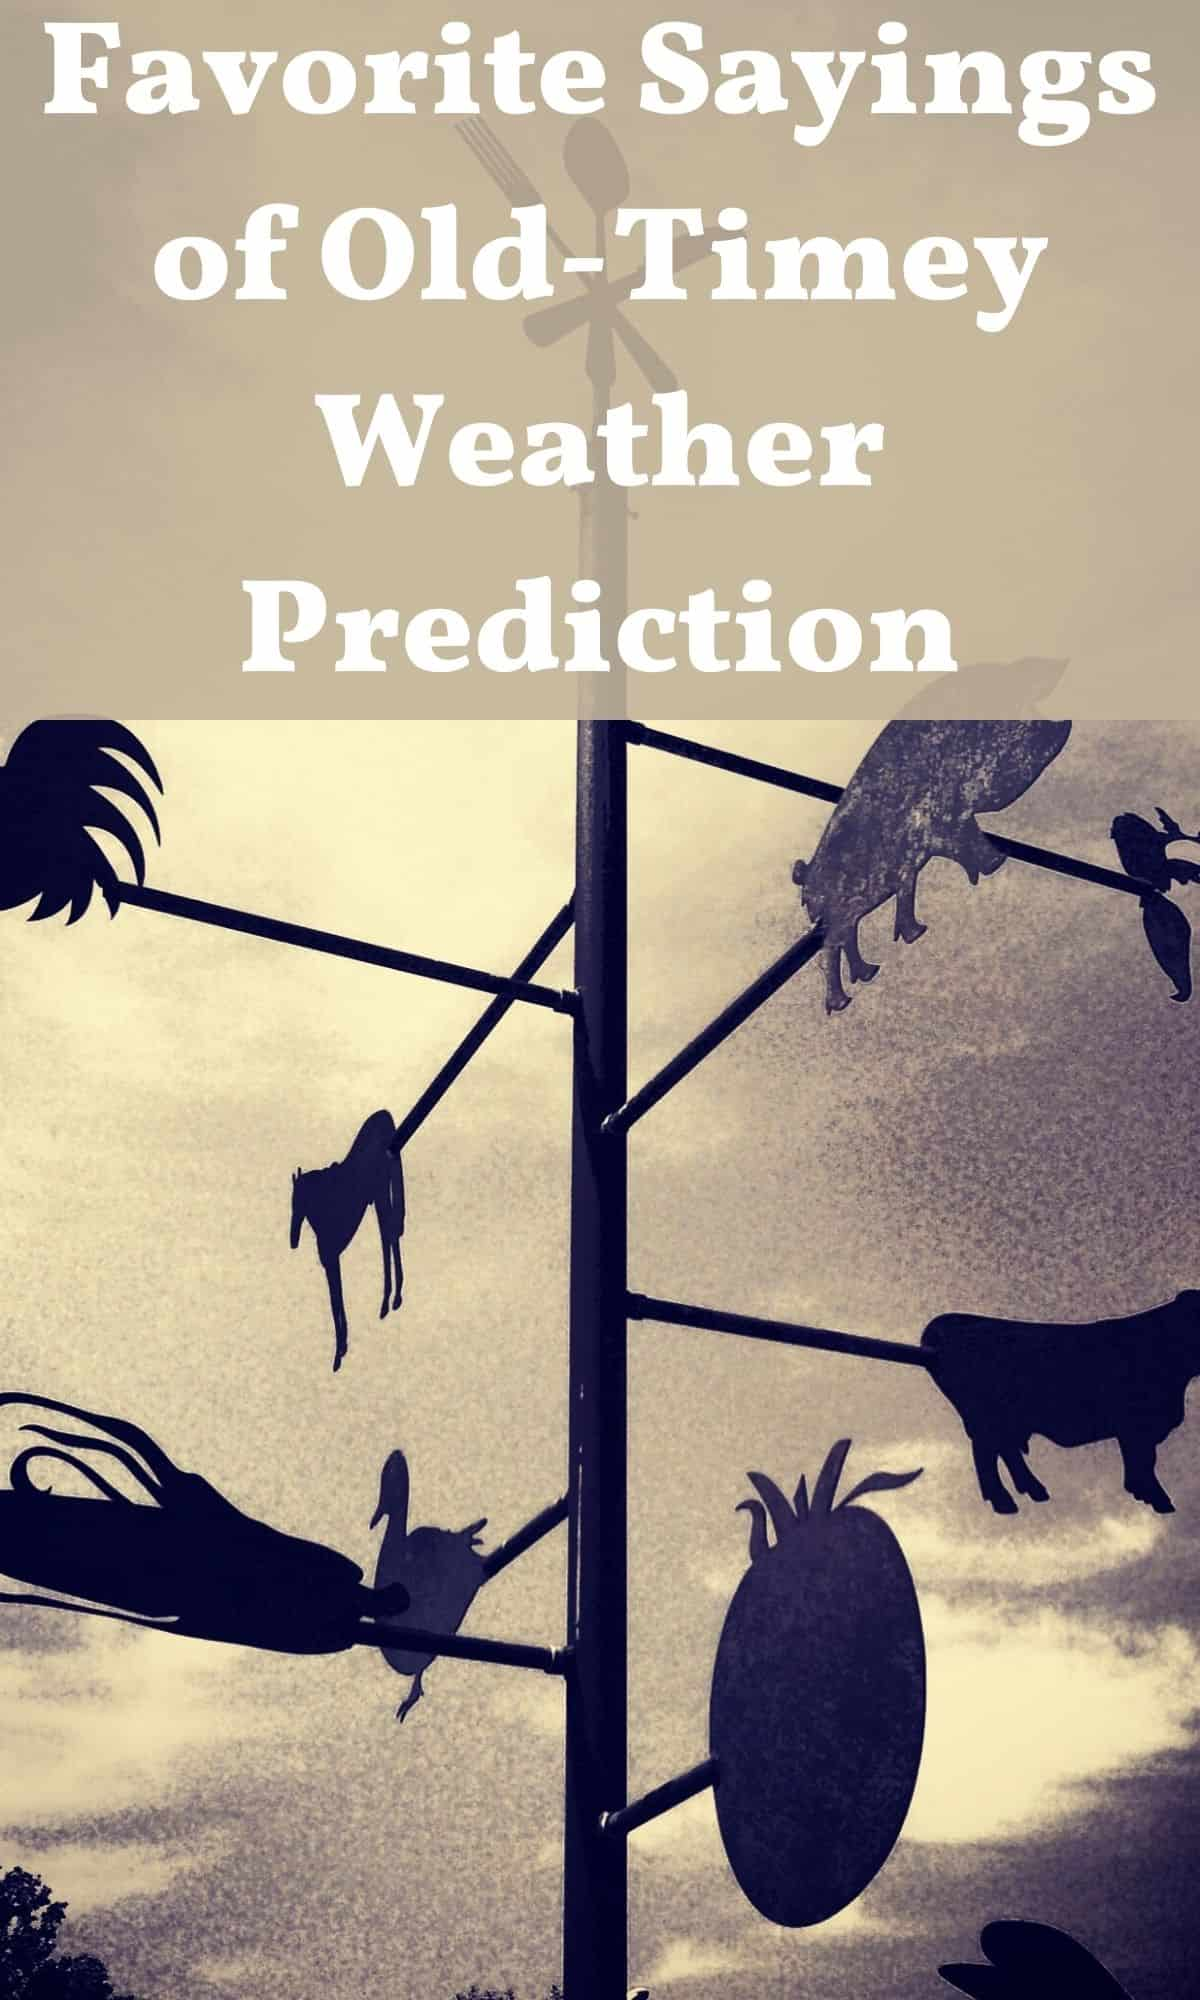 old-timey weather vane for old-timey weather sayings